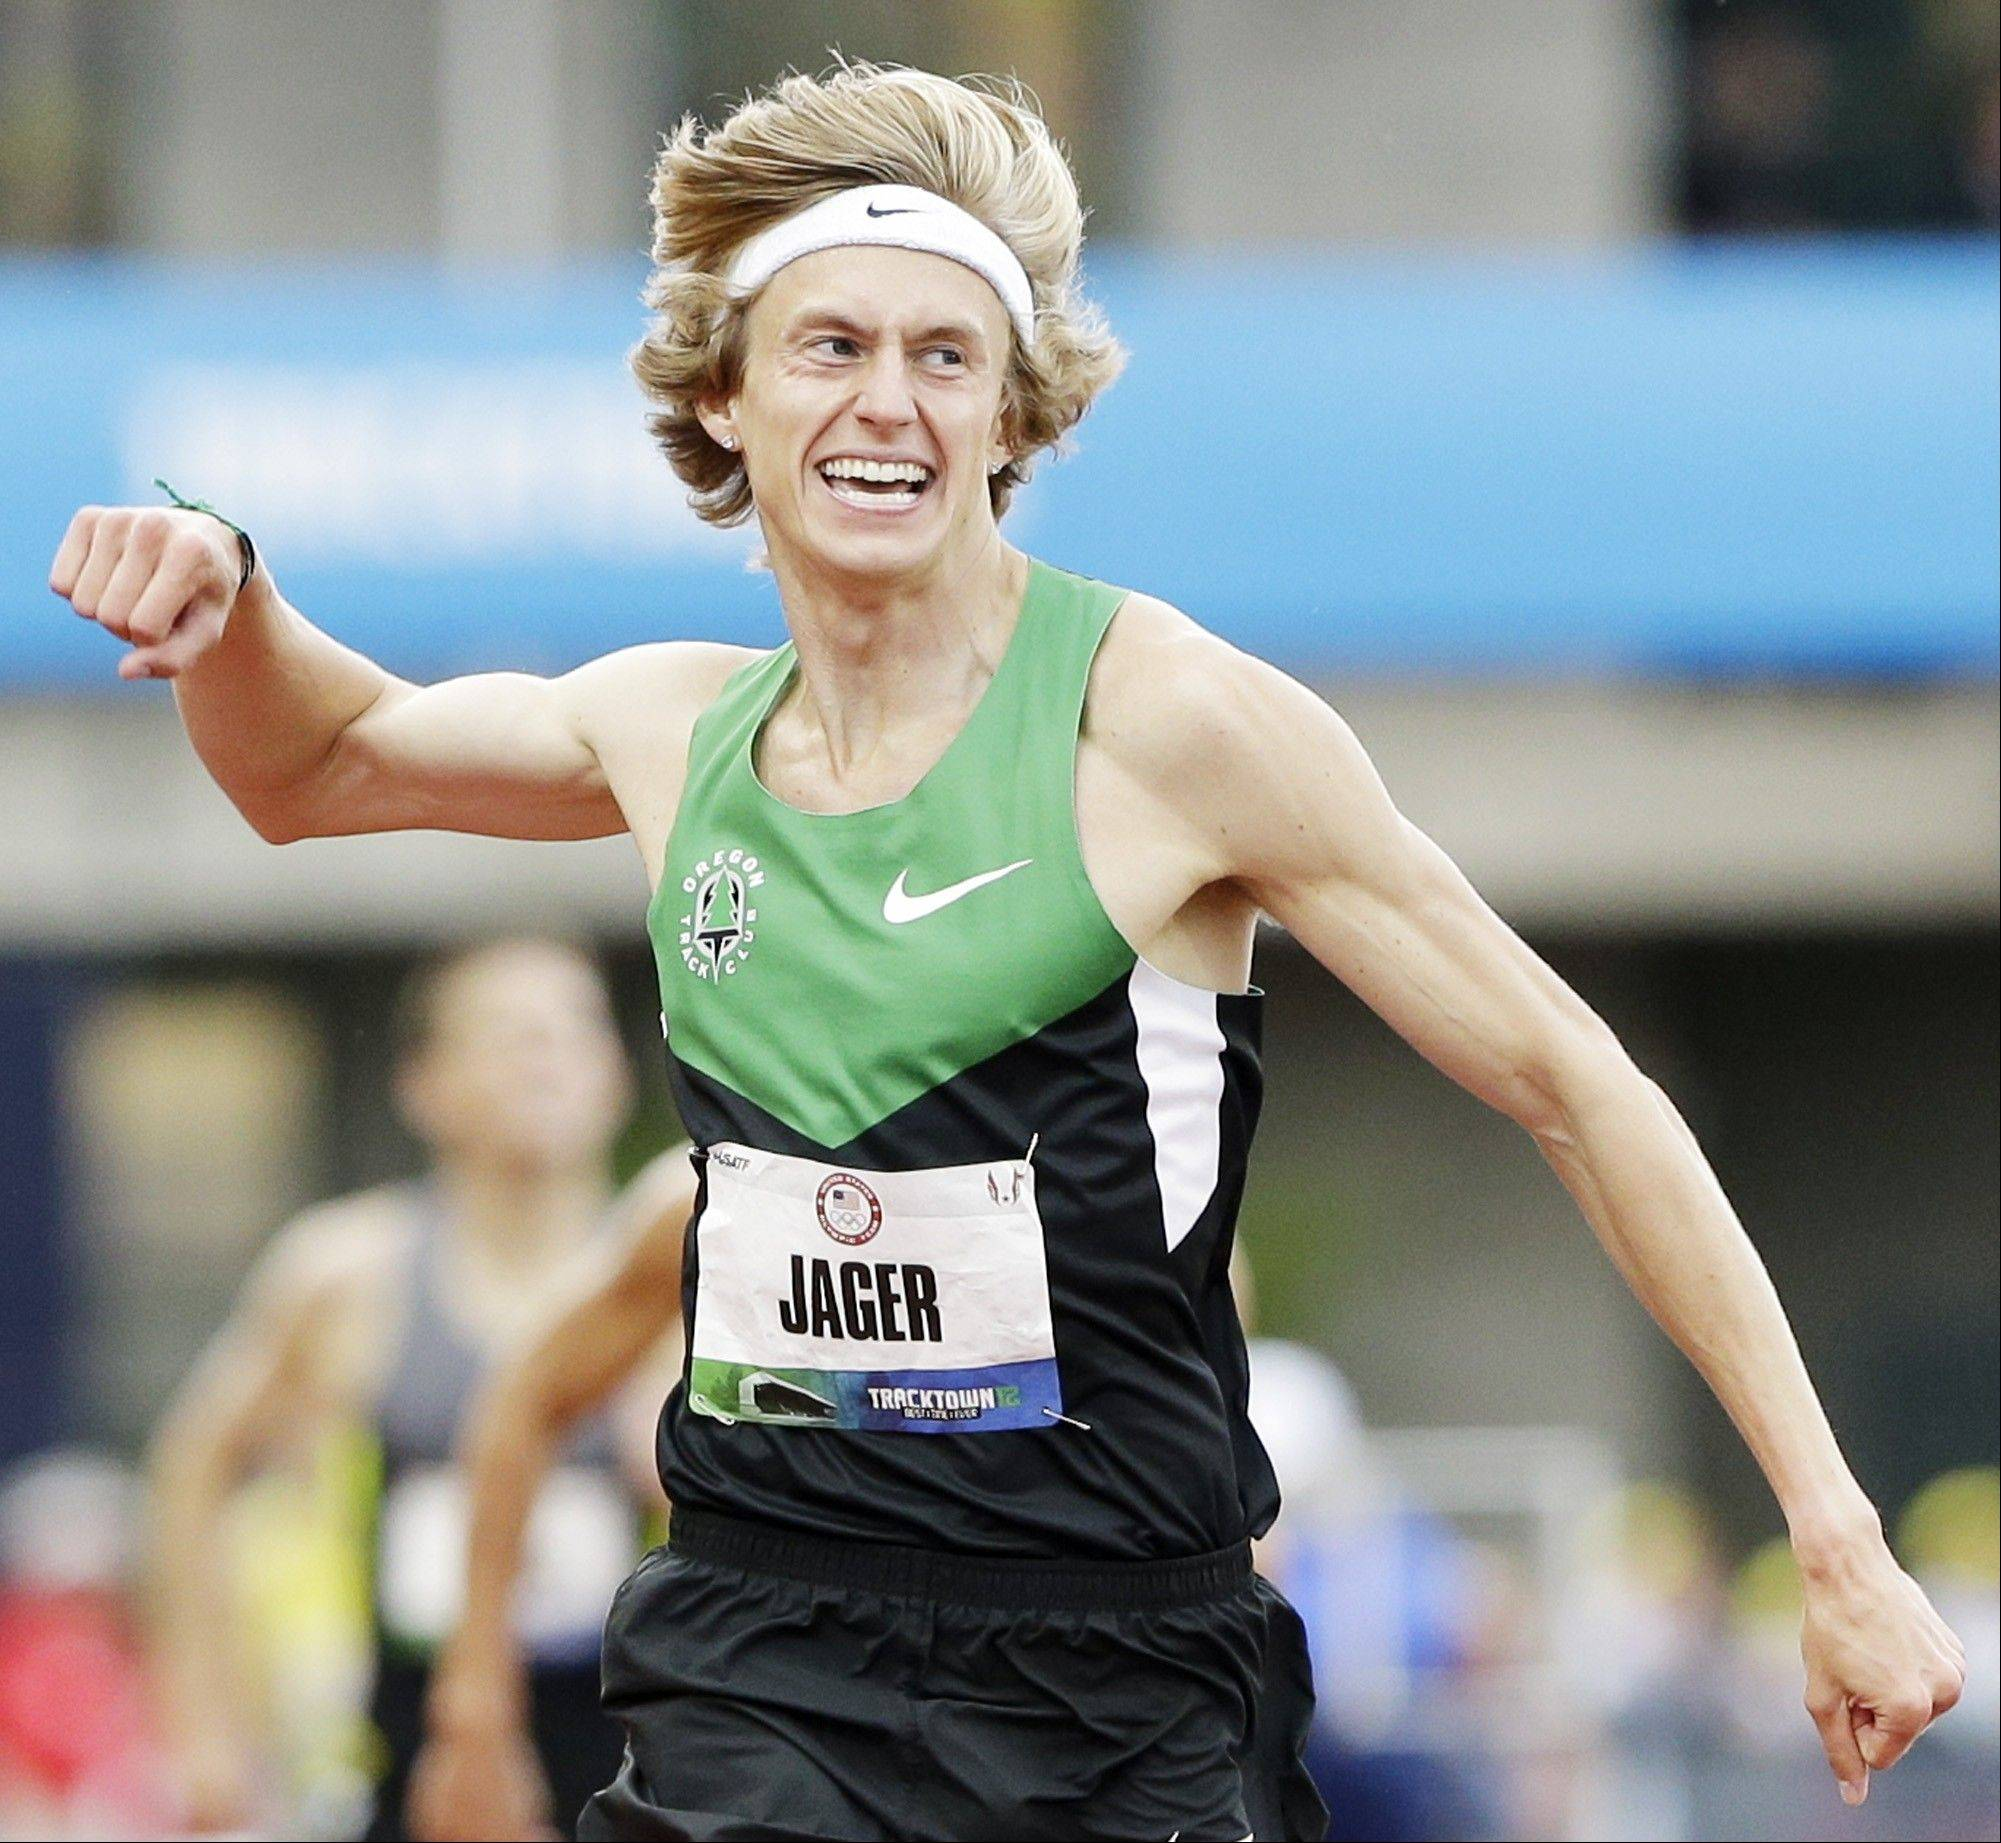 Evan Jager celebrates after winning the men's 3000-meter steeplechase at the U.S. Olympic Track and Field Trials on June 28 in Eugene, Ore. Since then, Jager broke the U.S. record at an international meet last Friday in Monaco.